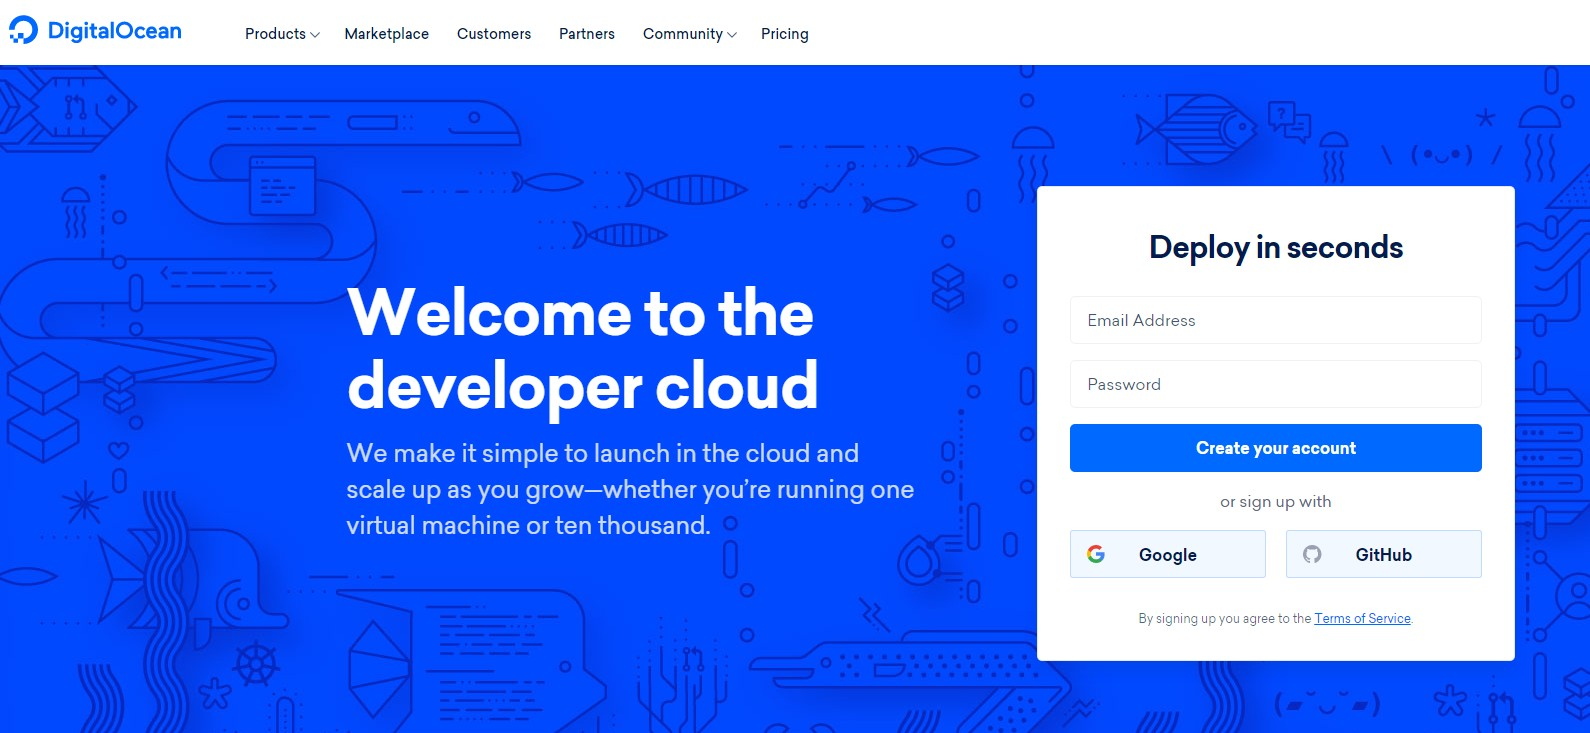 Best Web Host for eCommerce Online Store DigitalOcean